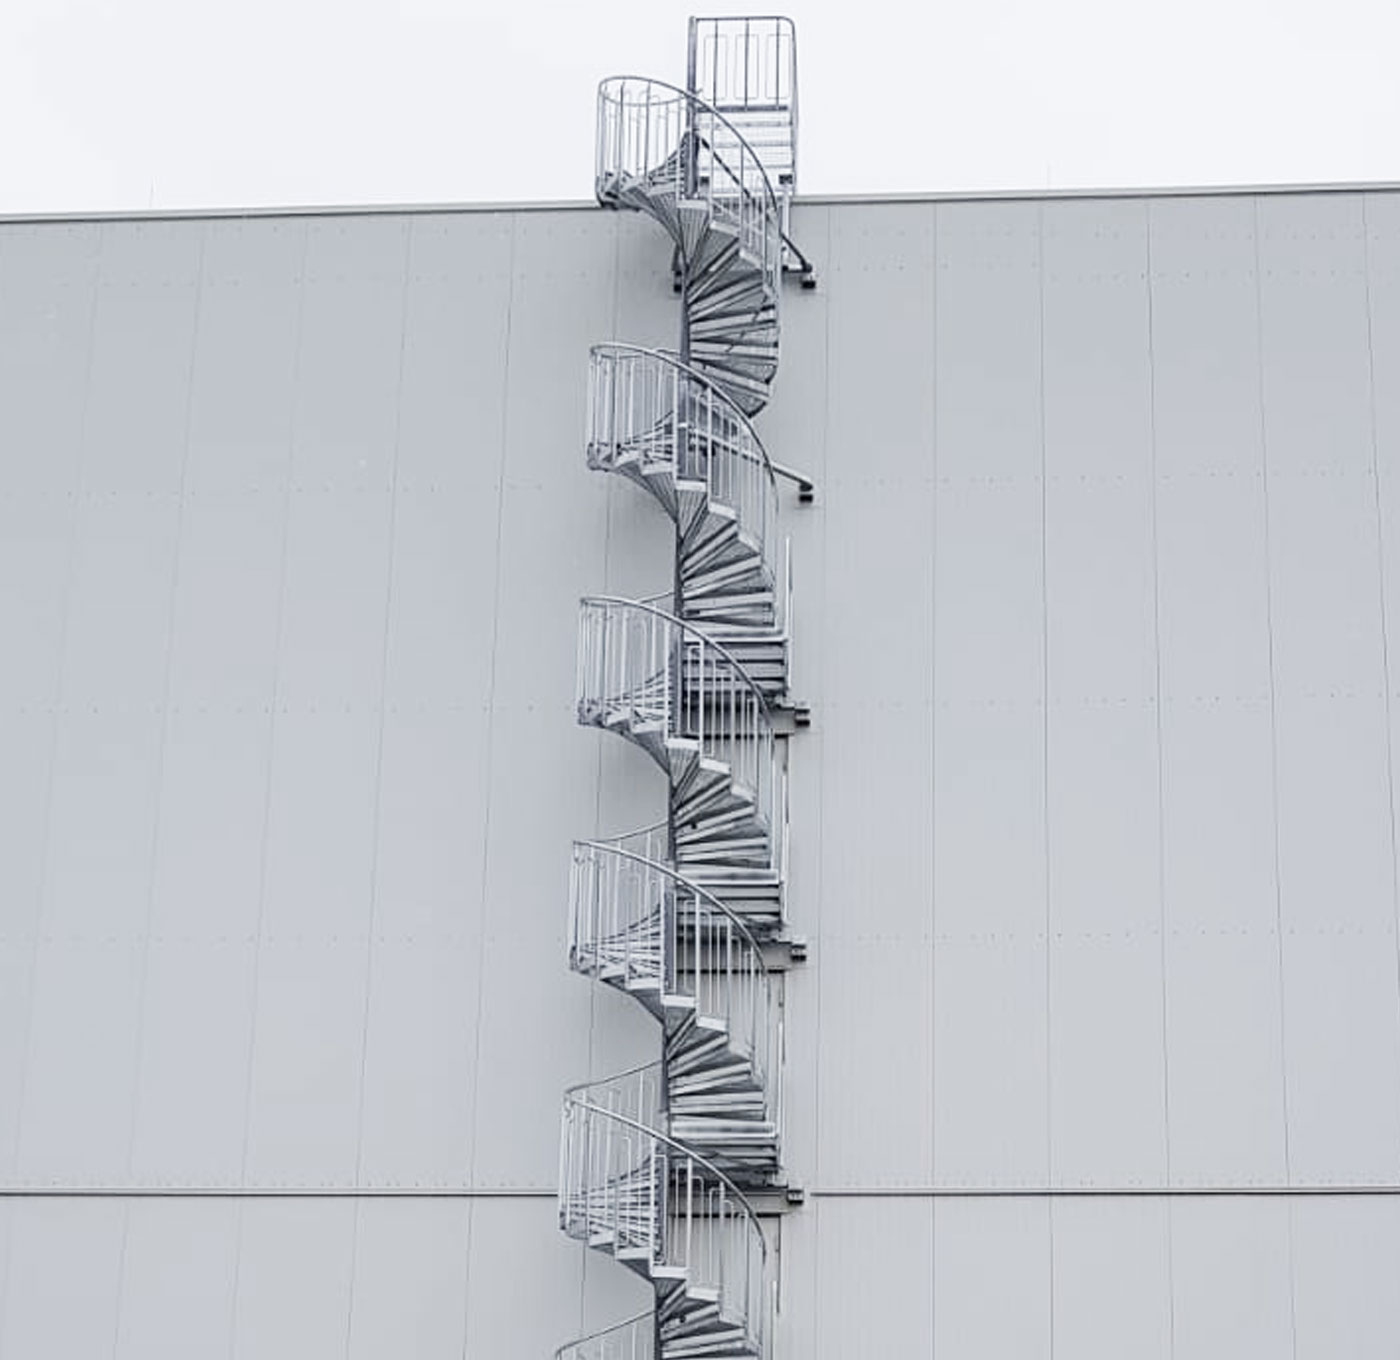 Spiral staircase standard outdoors